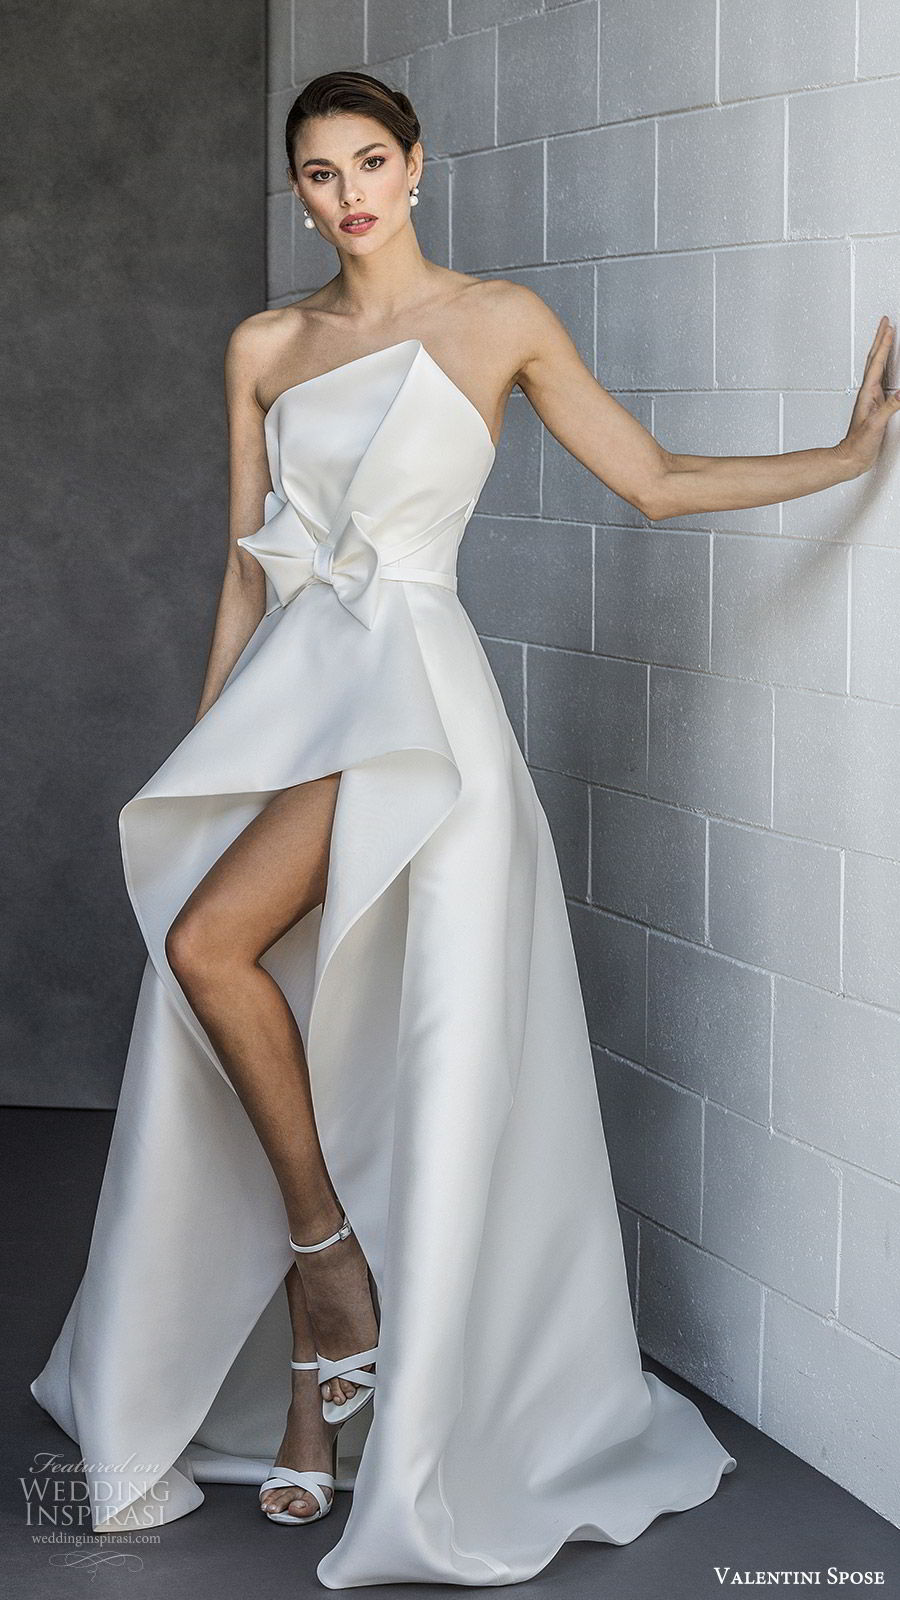 valentini spose spring 2020 bridal strapless asymmetric neckline high low skirt a line wedding dress (2) bow waist modern clean minimalist mv